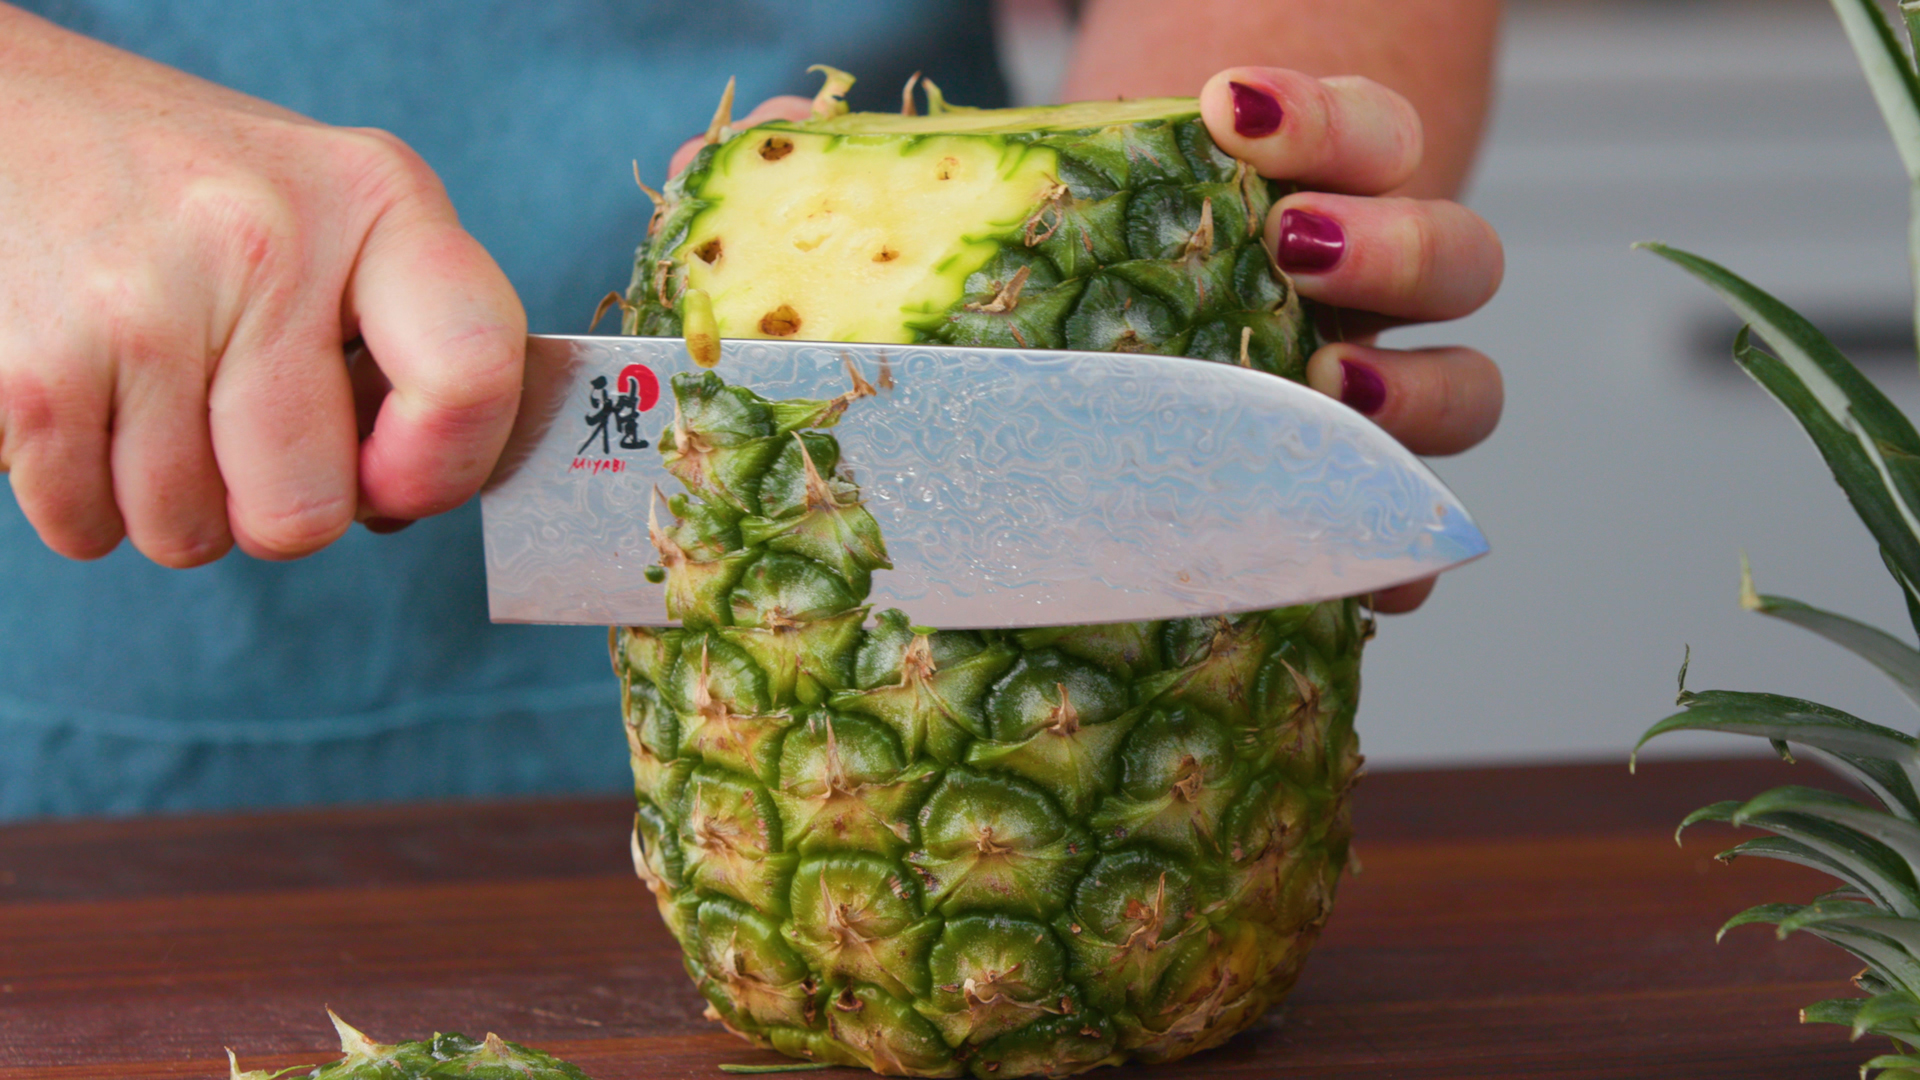 Peeling and Cutting a Pineapple